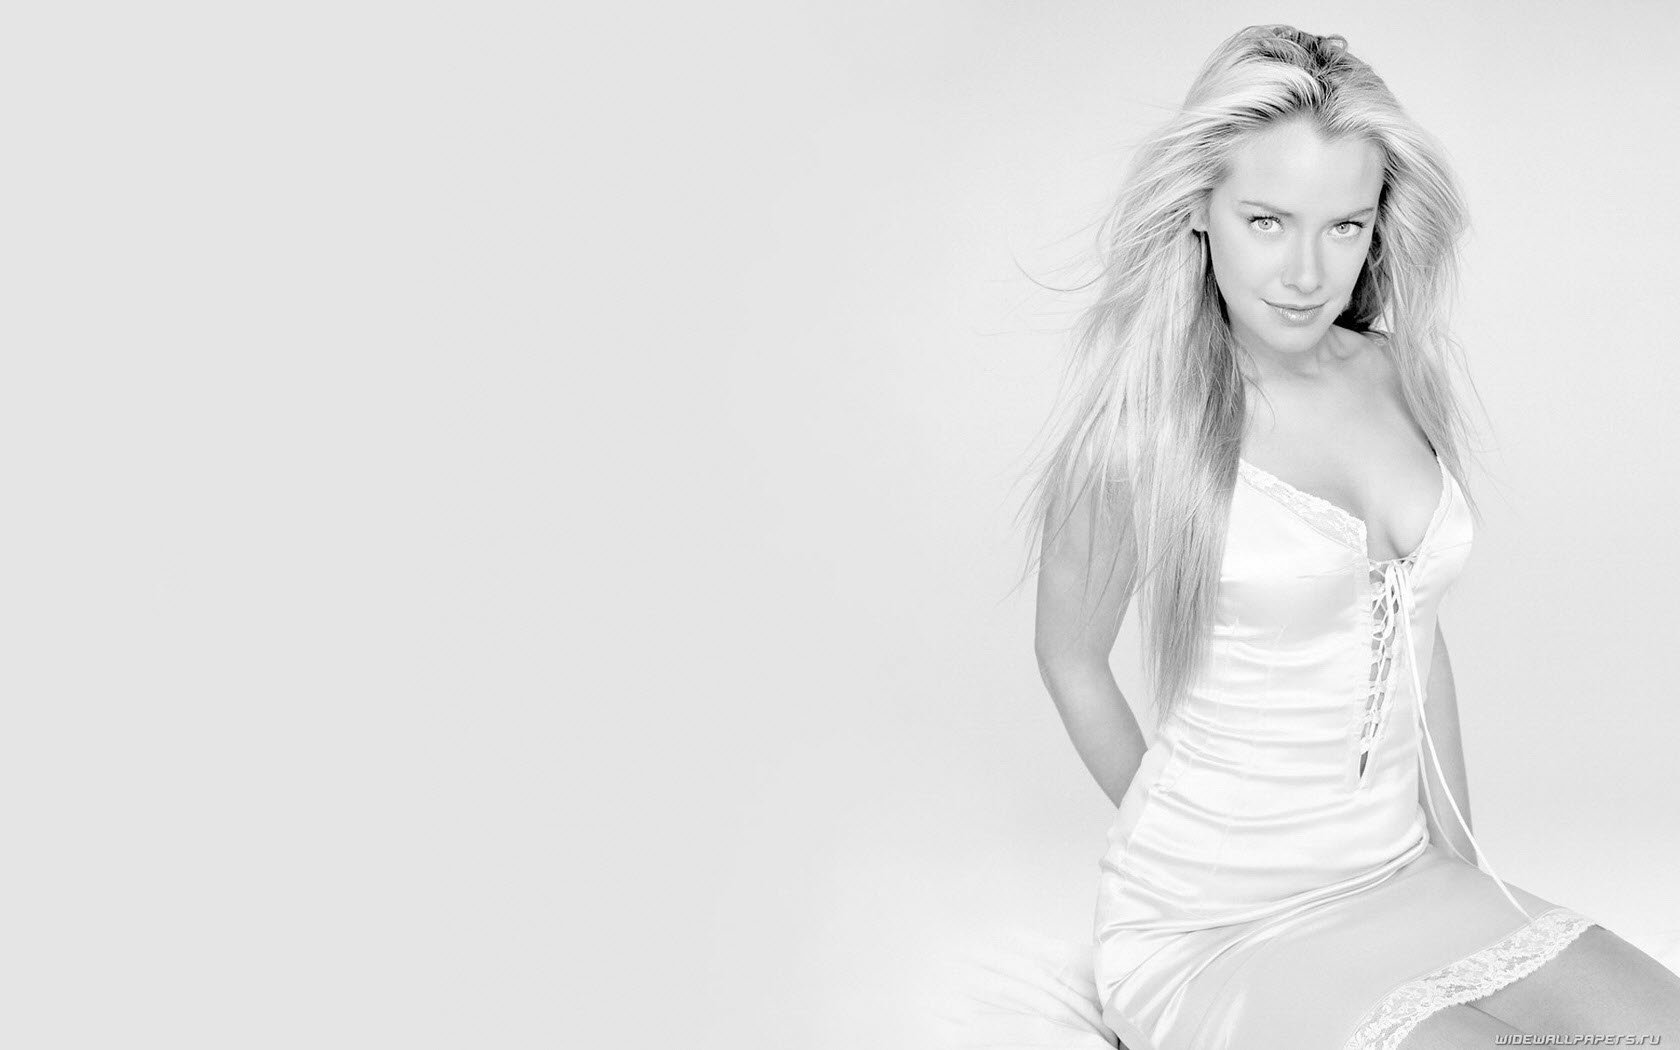 Awesome Kristanna Loken free wallpaper ID:185633 for hd 1680x1050 desktop